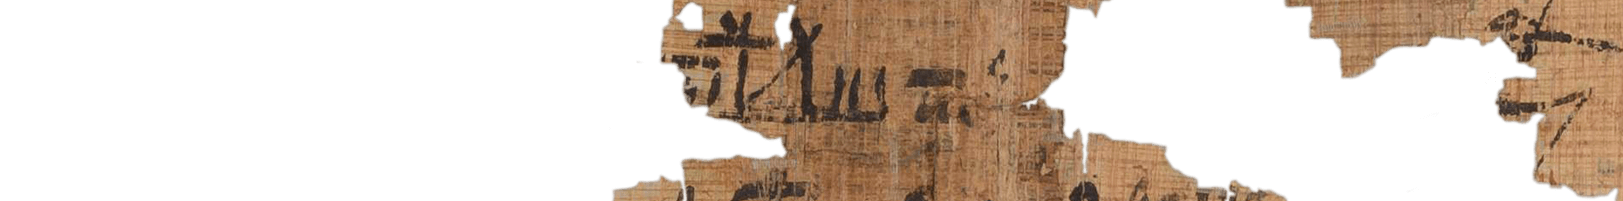 the Turin king list 3.3 (photo of the hieratic text)